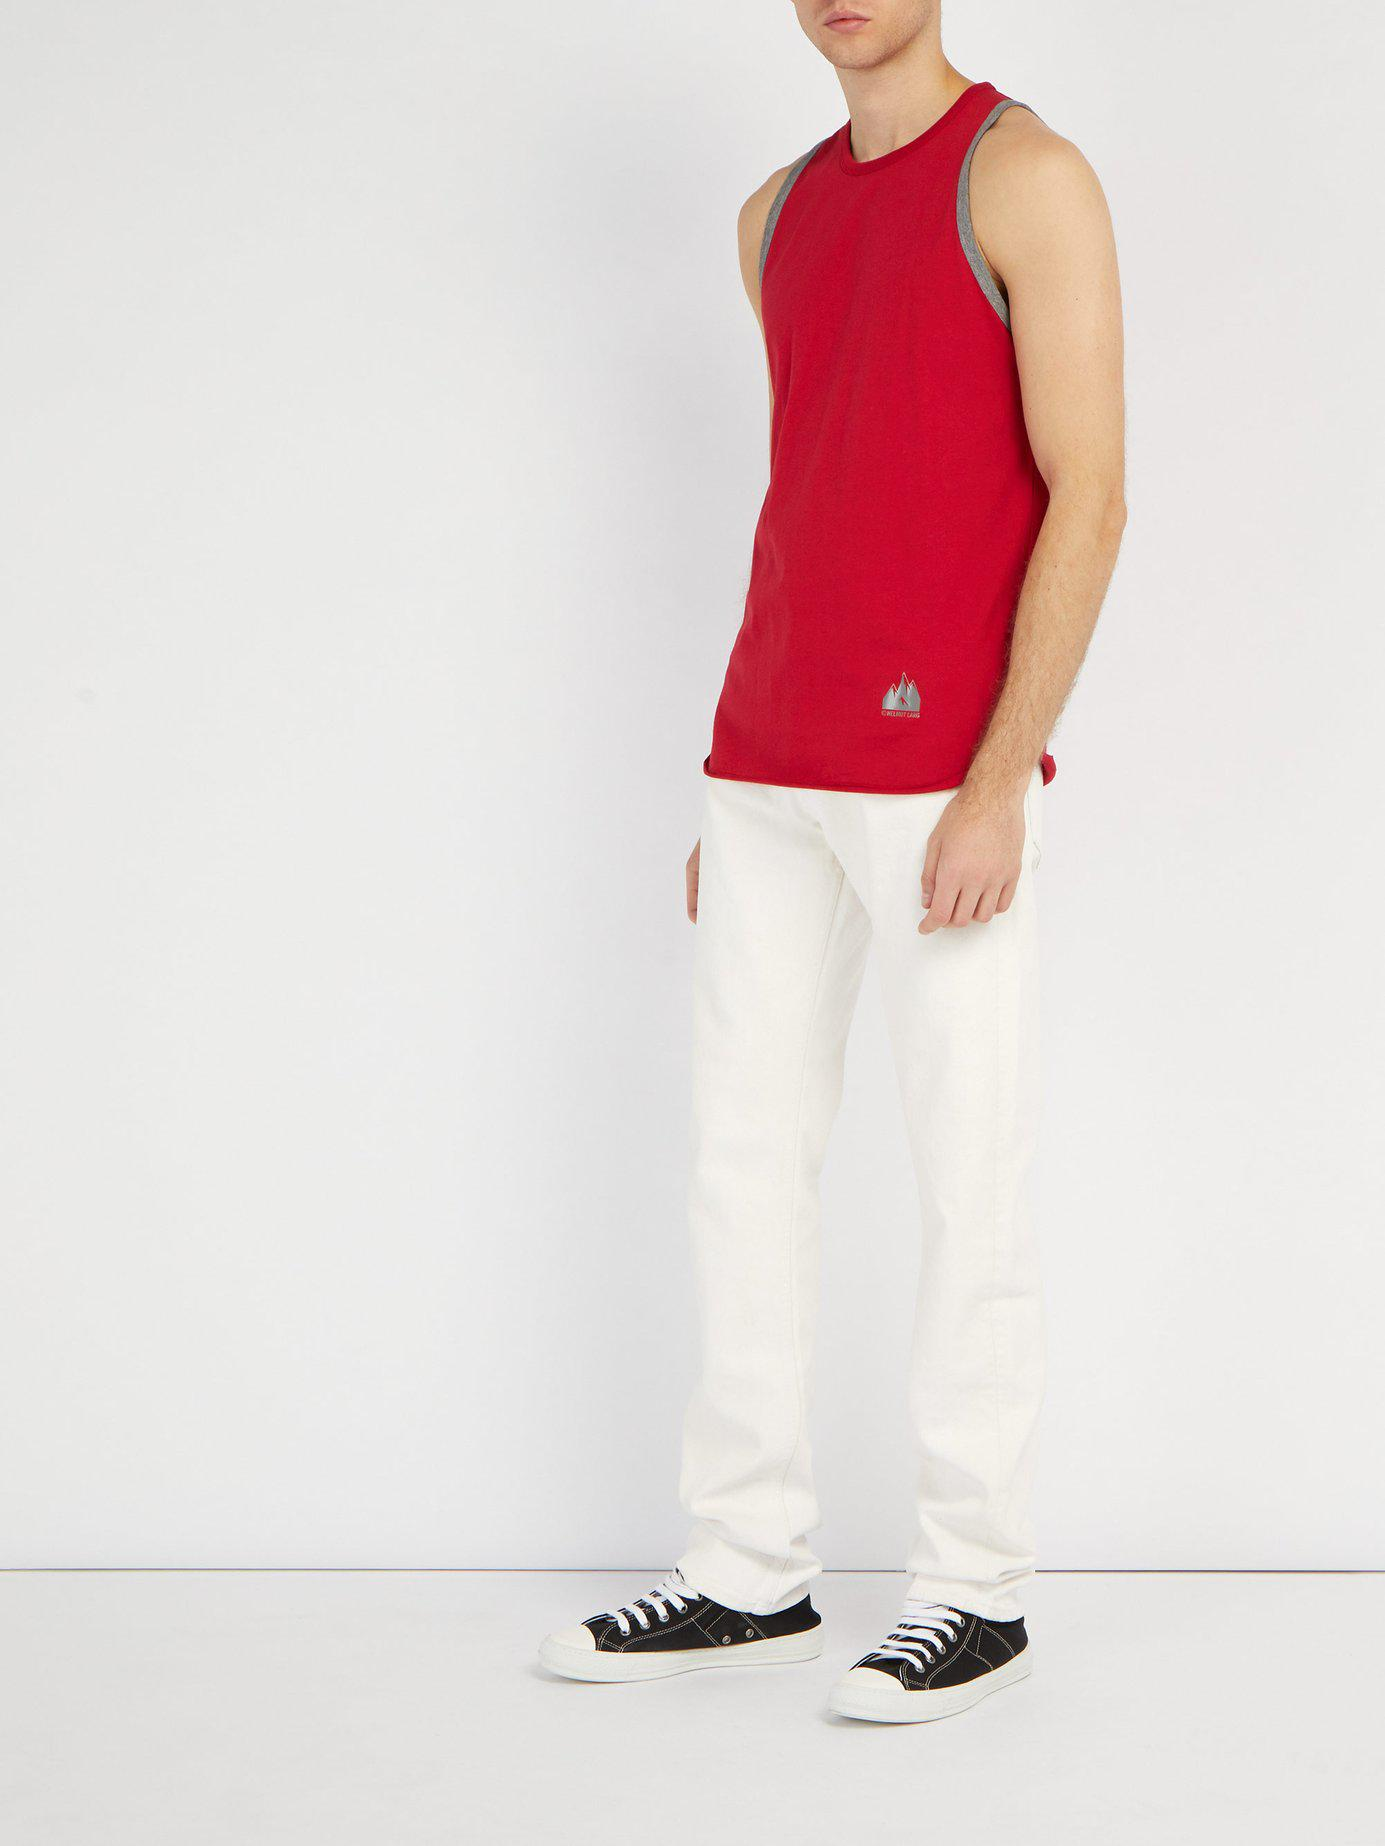 239f24afd1787c Lyst - Helmut Lang Mountain Logo Ringer Cotton Tank Top in Red for Men